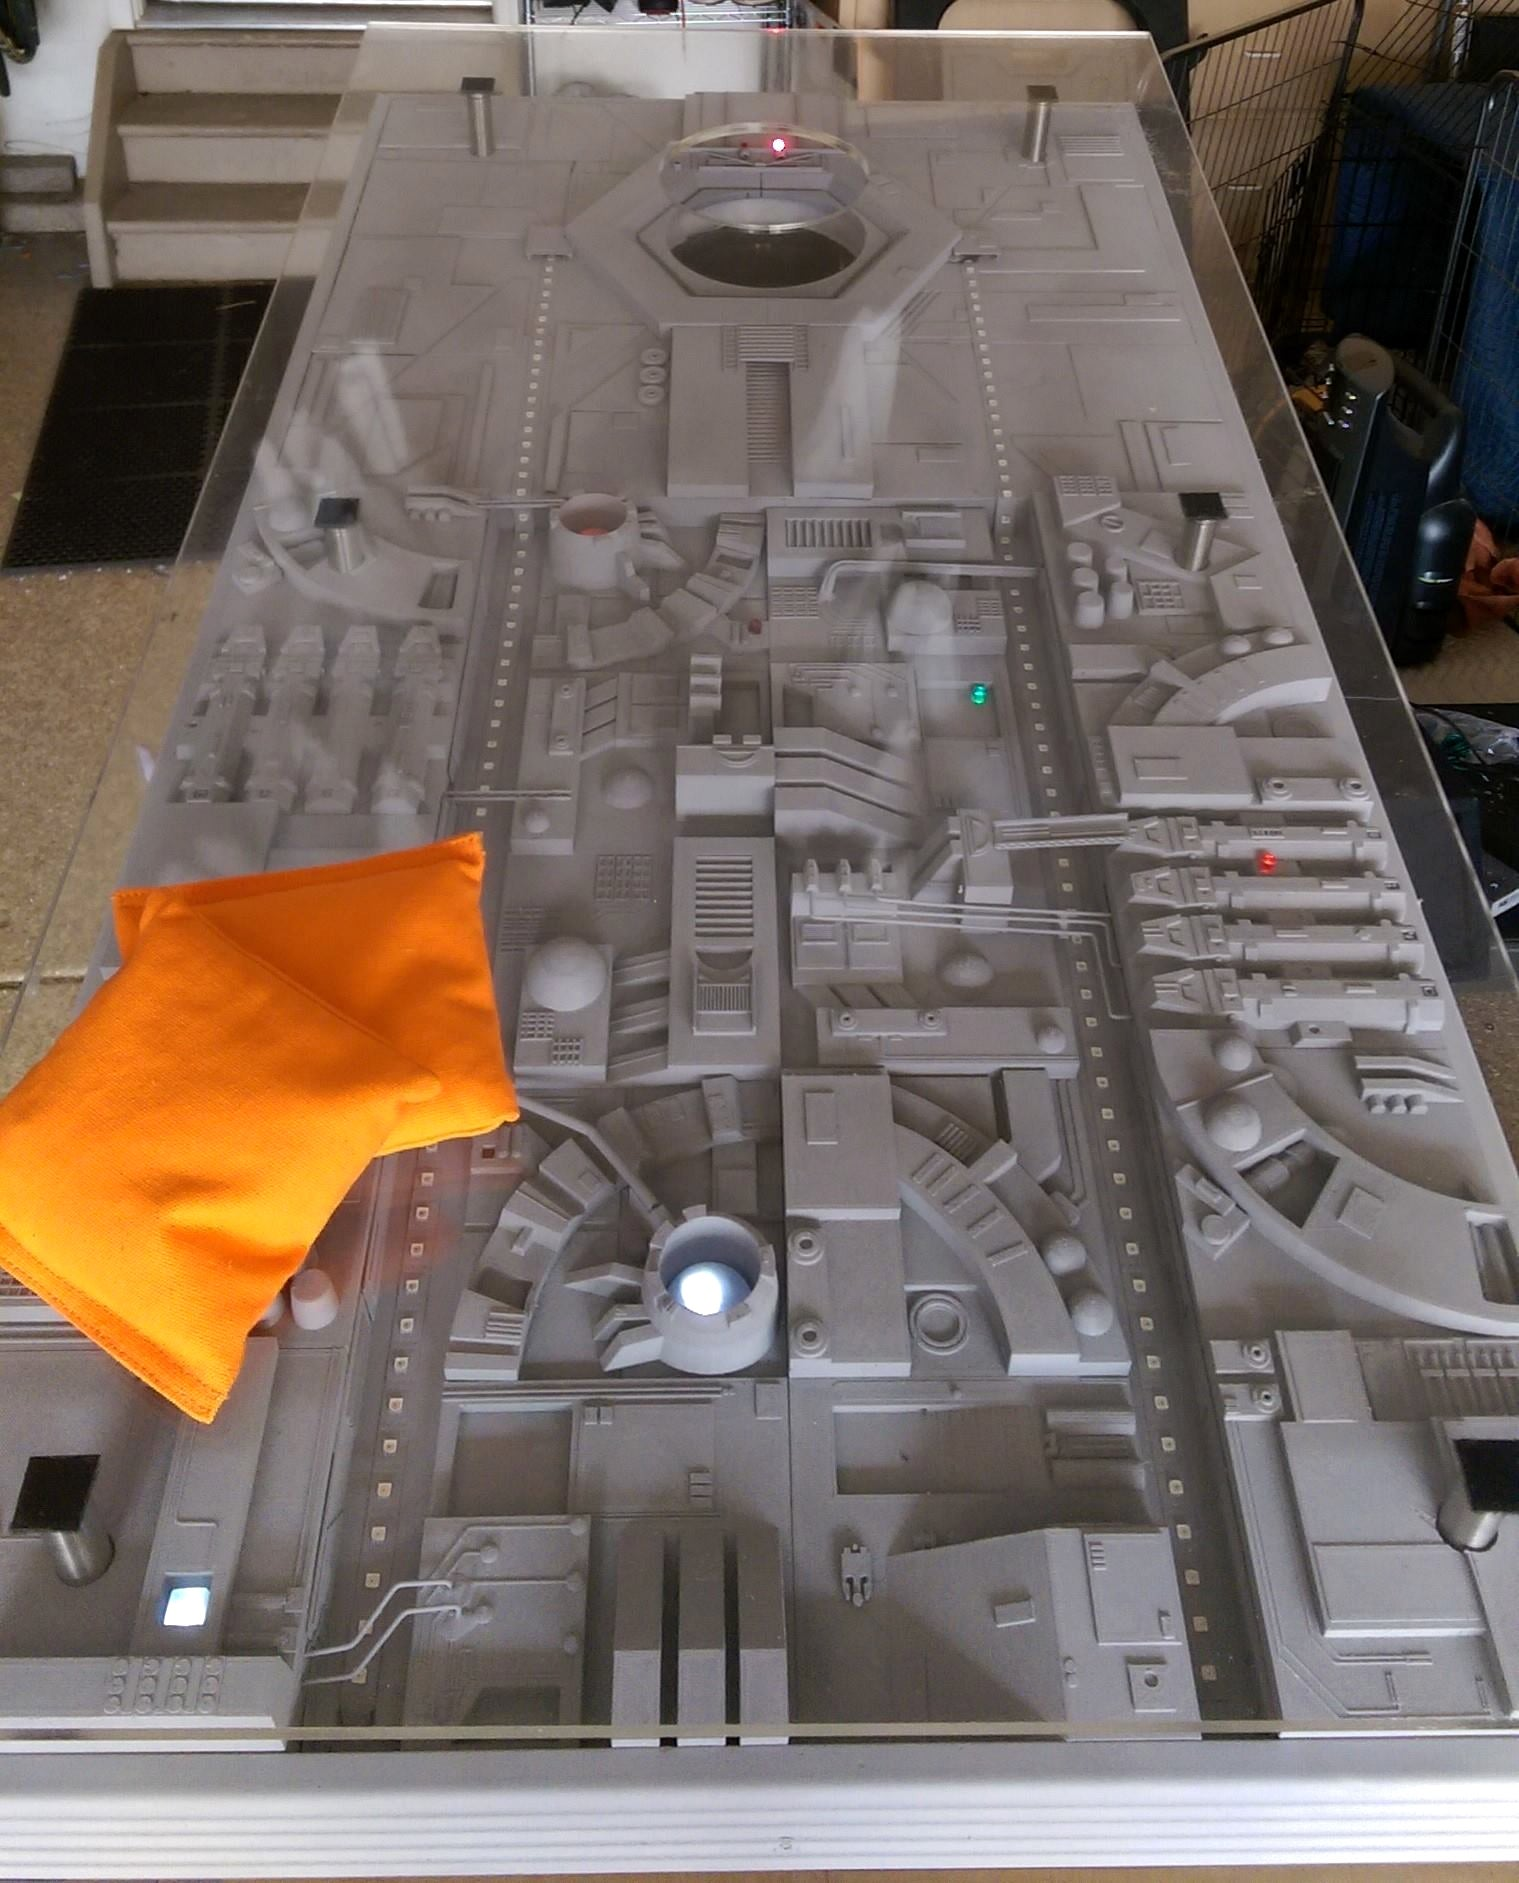 Every Skywalker Family Reunion Needs This Amazing Death Star Cornhole Game